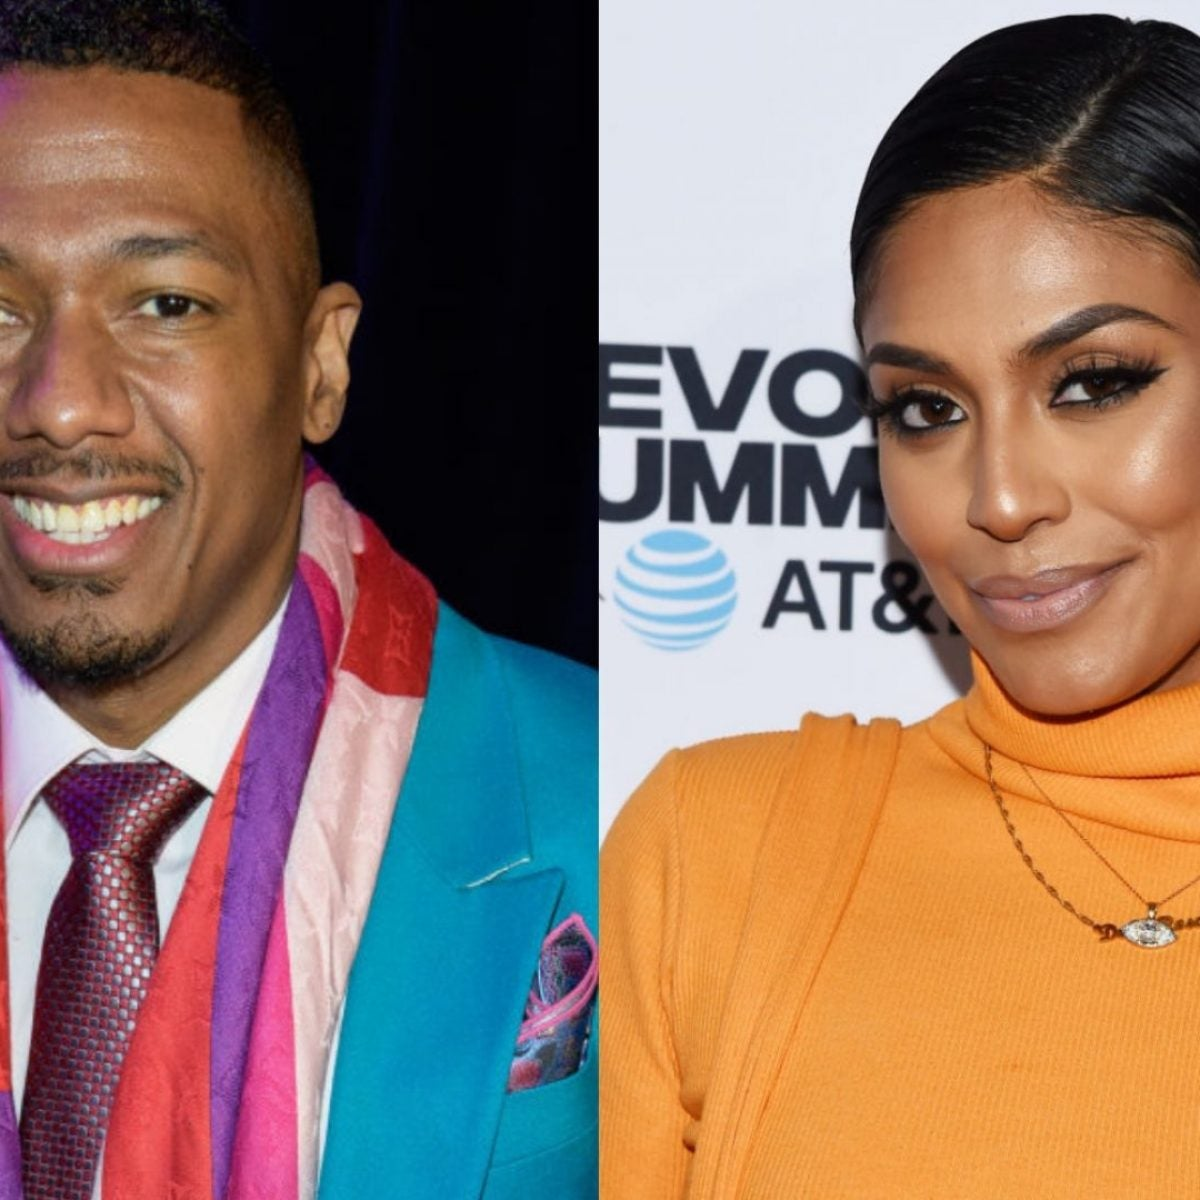 Nick Cannon And Abby De La Rosa's Baby Shower Was A Colorful Club-Themed Turnup